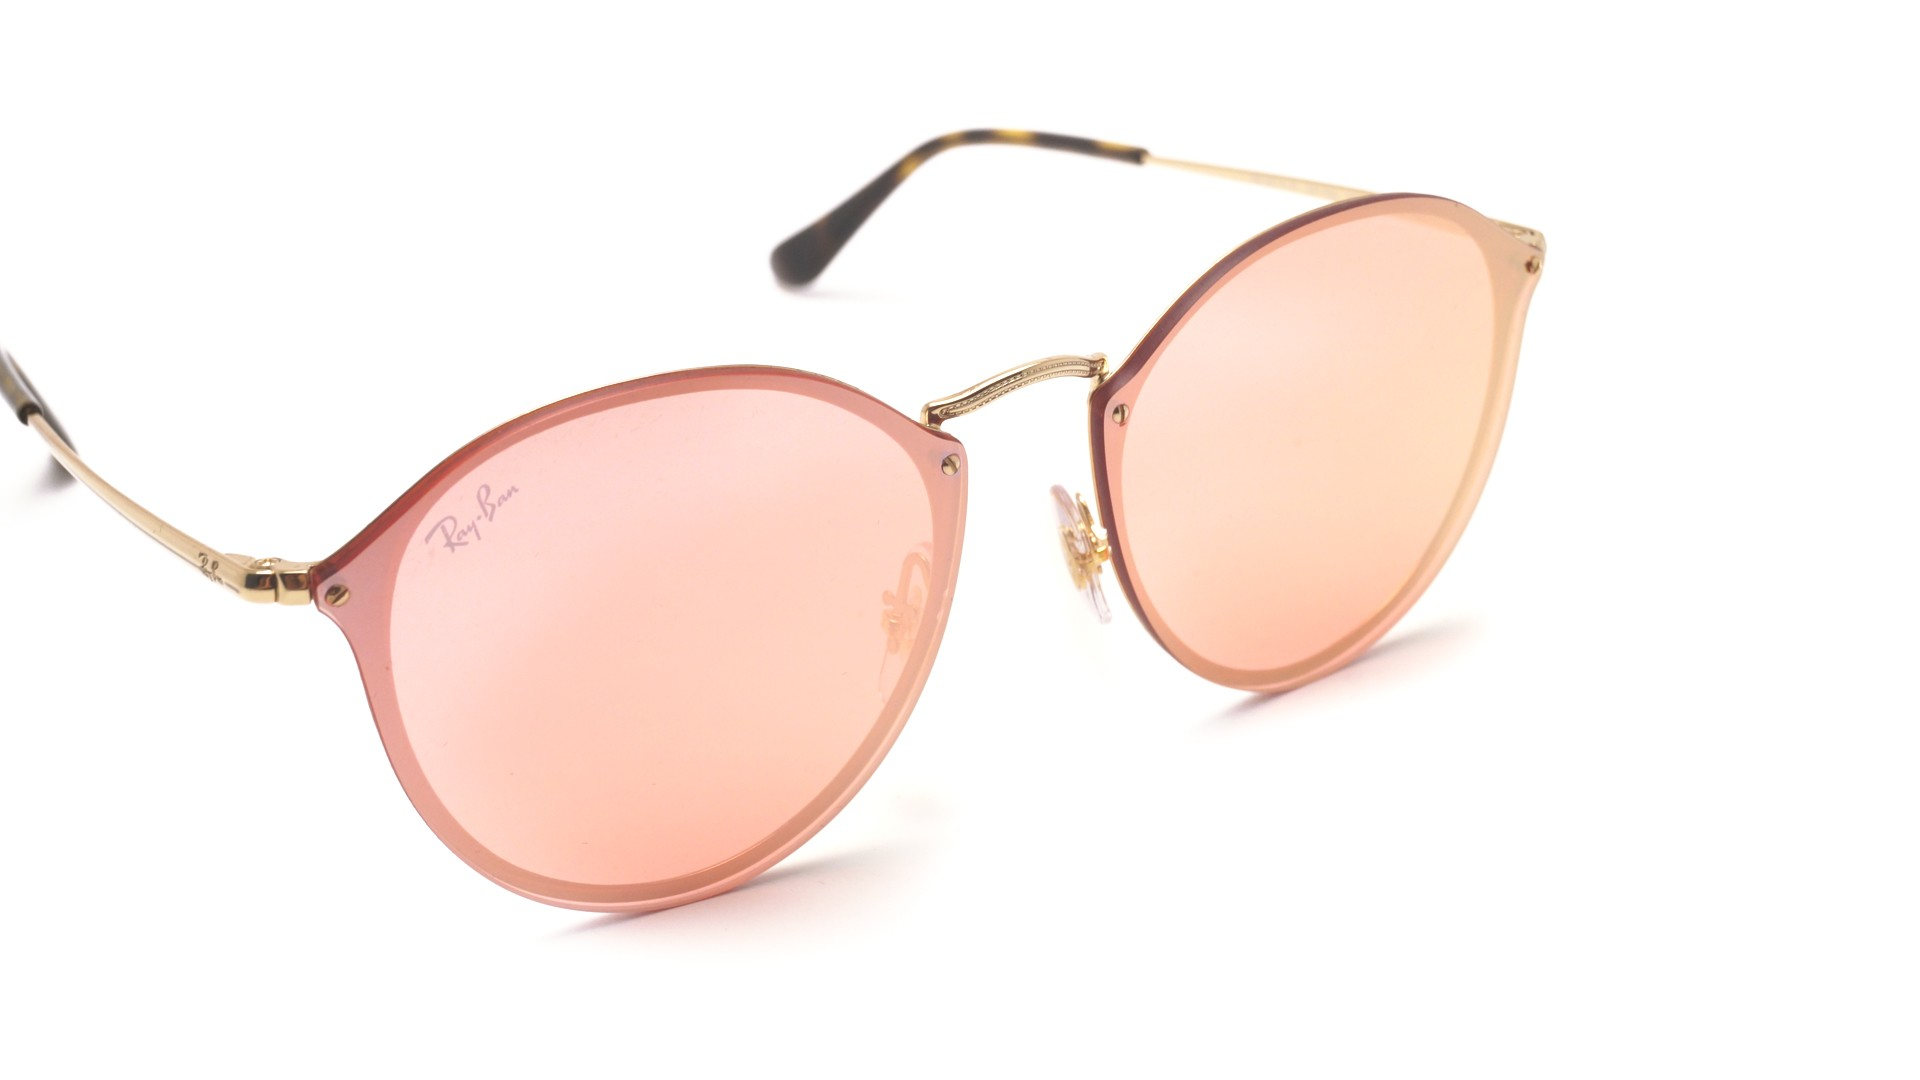 6a4bcf34e0 Sunglasses Ray-Ban Round Blaze Gold RB3574N 001 E4 59-14 Large Mirror